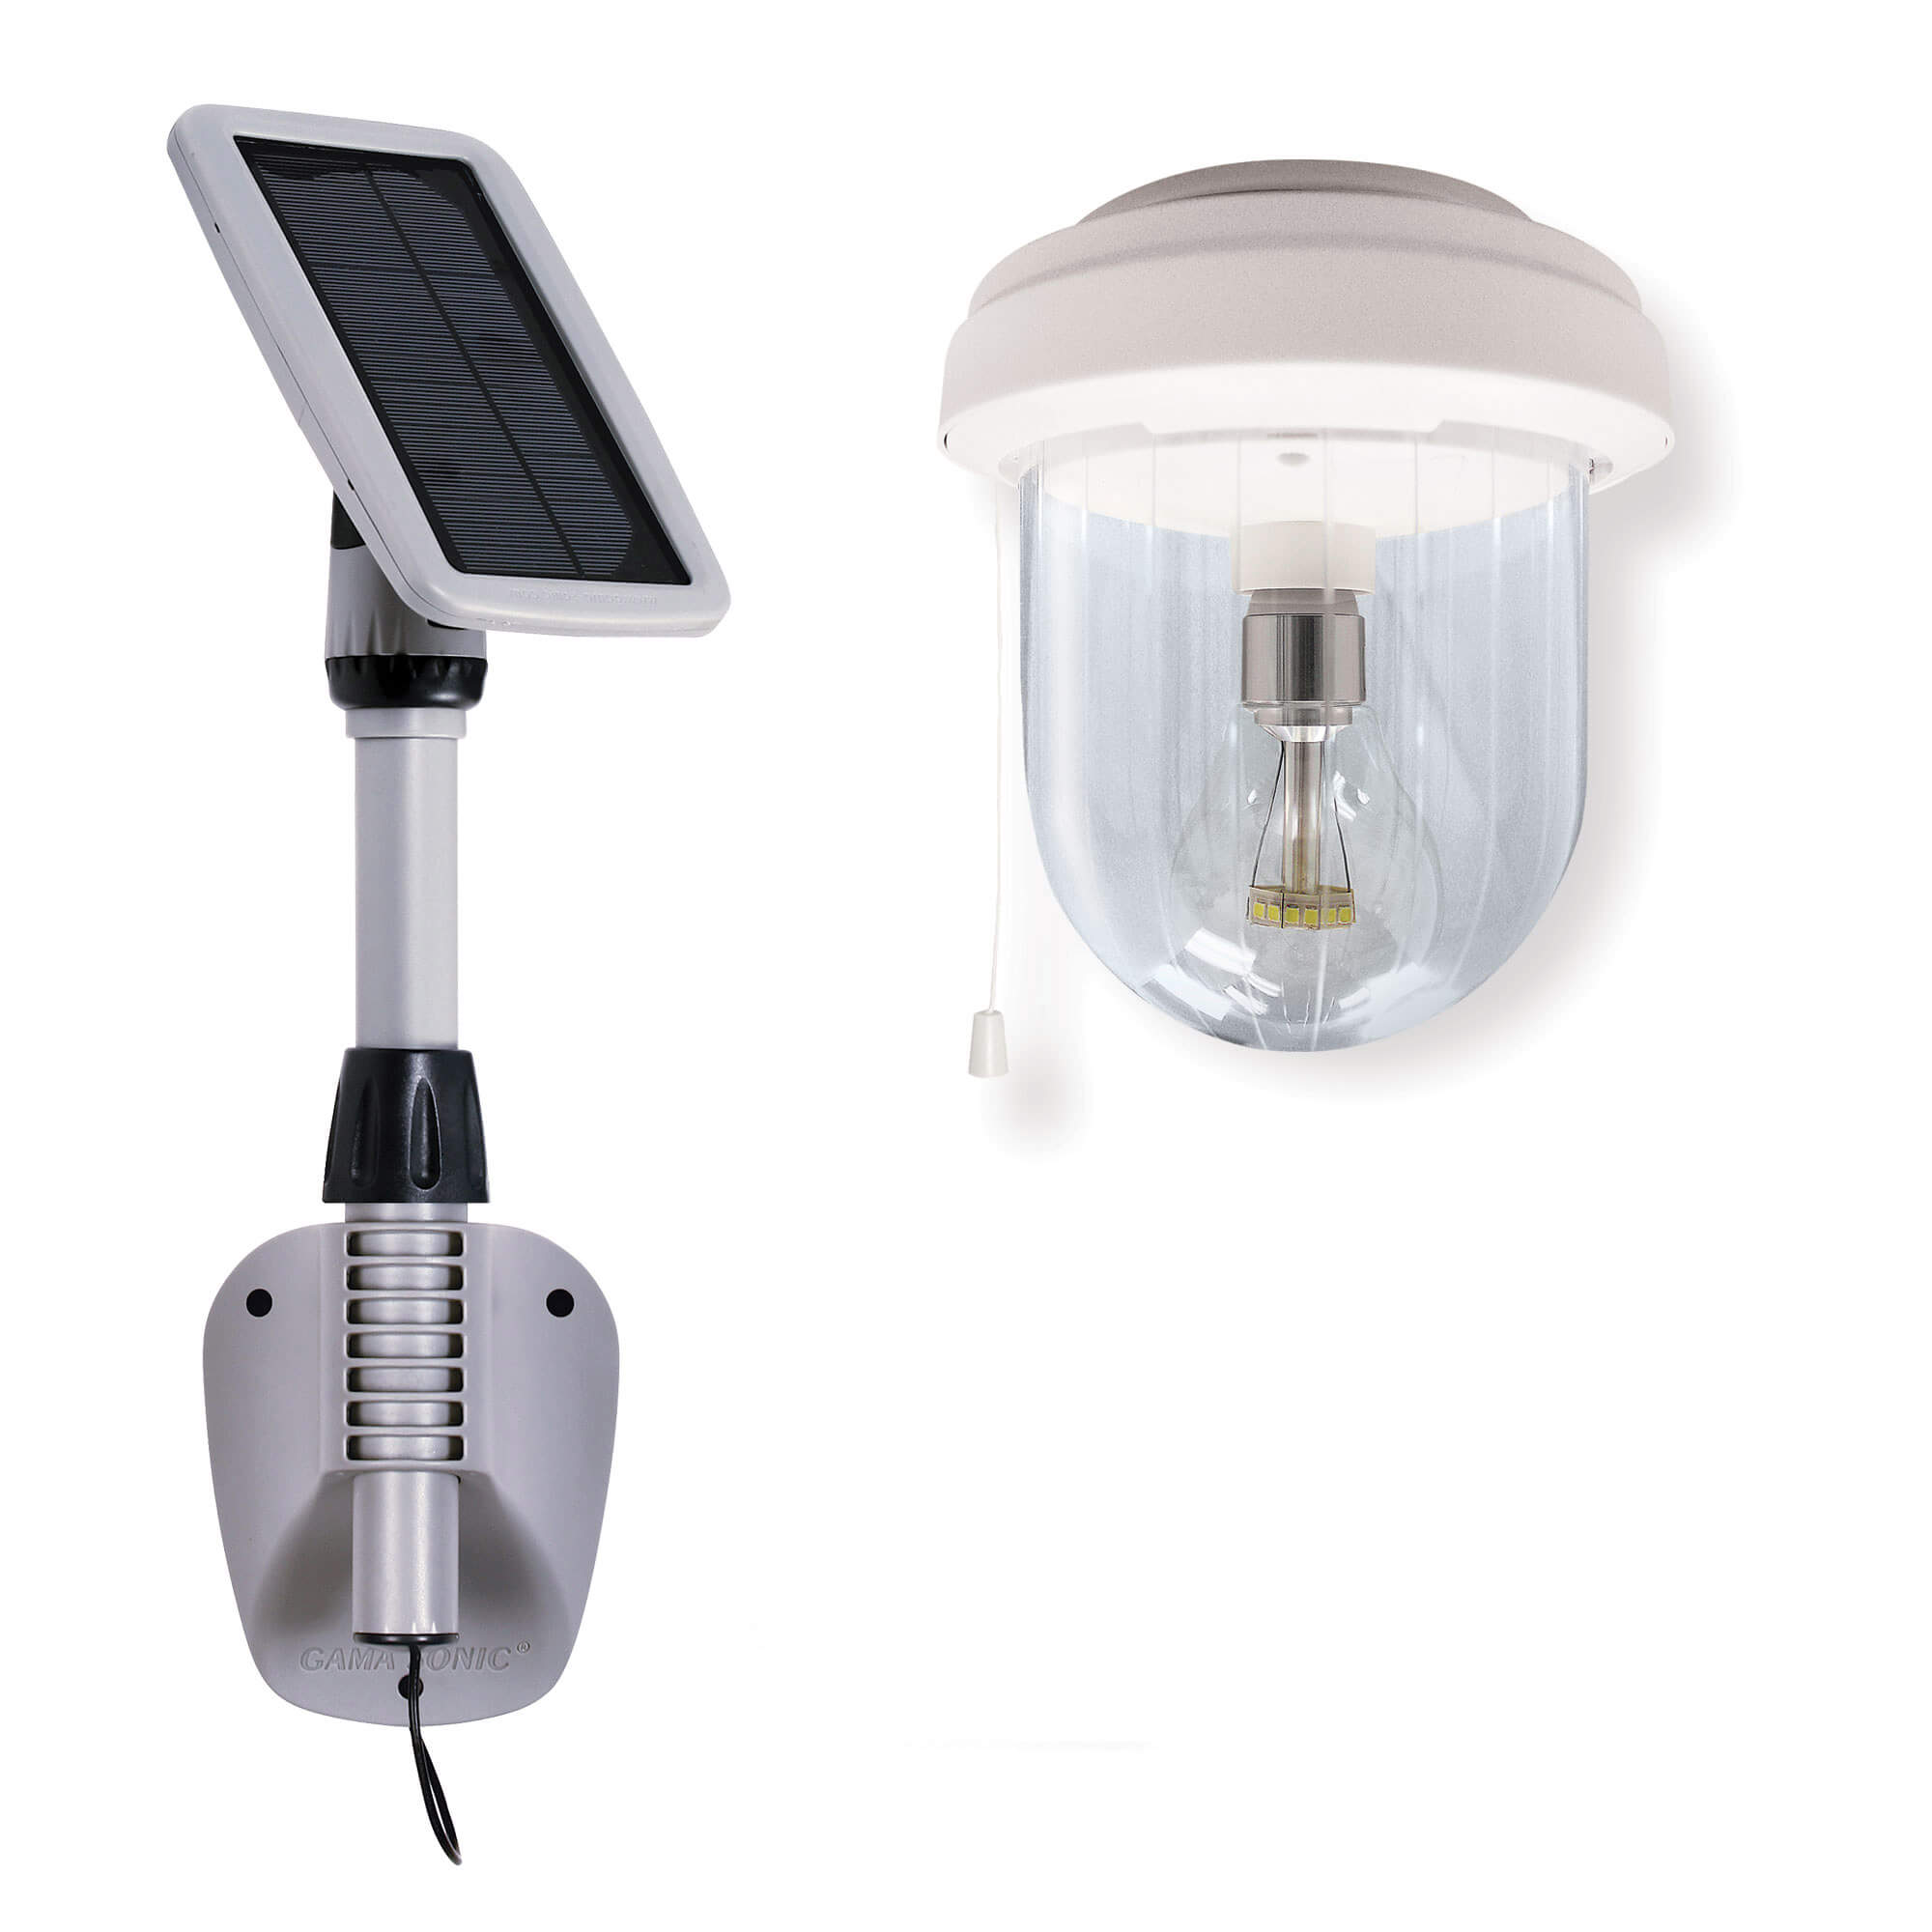 Light My Shed IV – Solar Powered Shed Light with Single Lamp